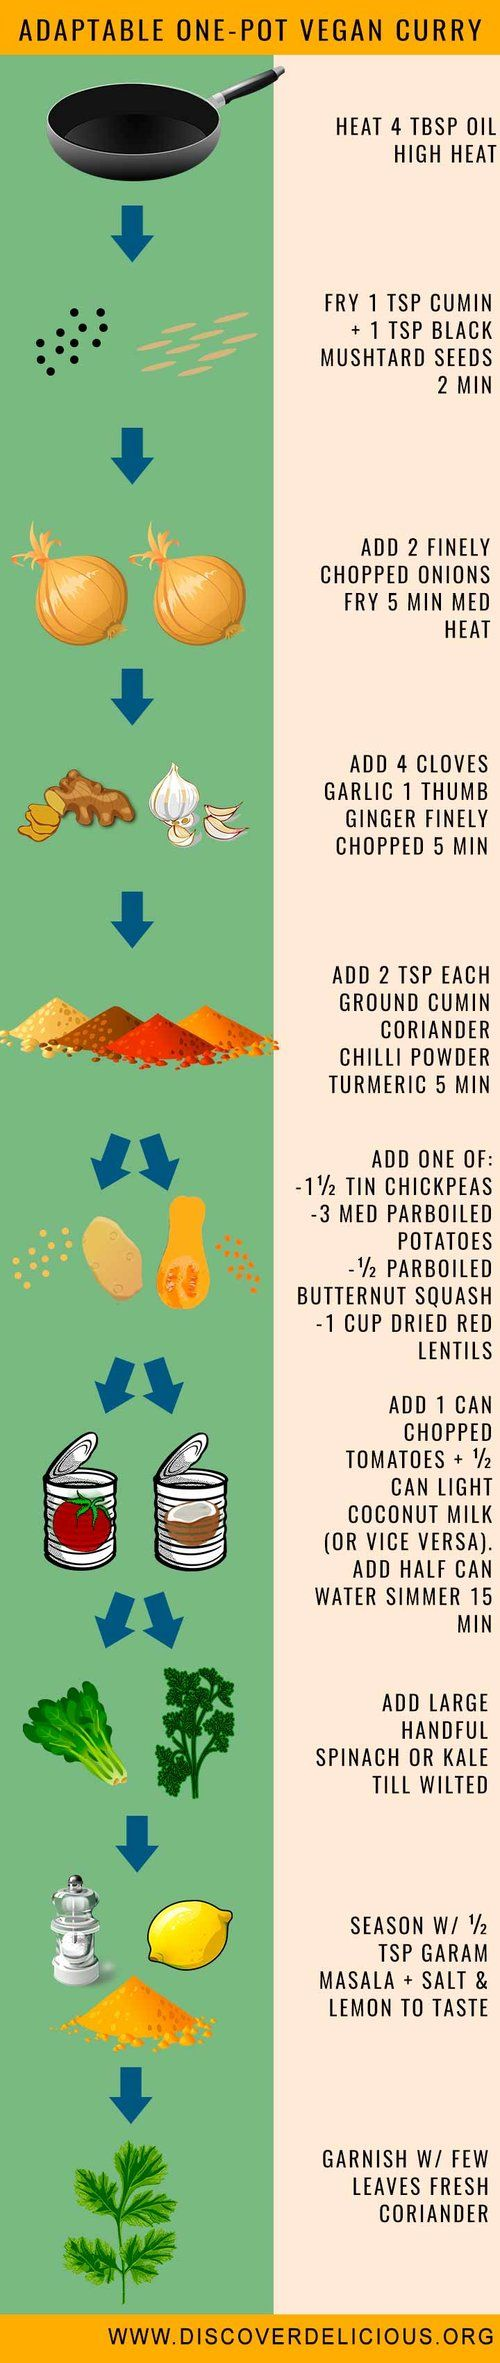 Adaptable One Pot Vegan Curry | Infographic Flowchart | www.discoverdelicious.org | Vegan Food Blog